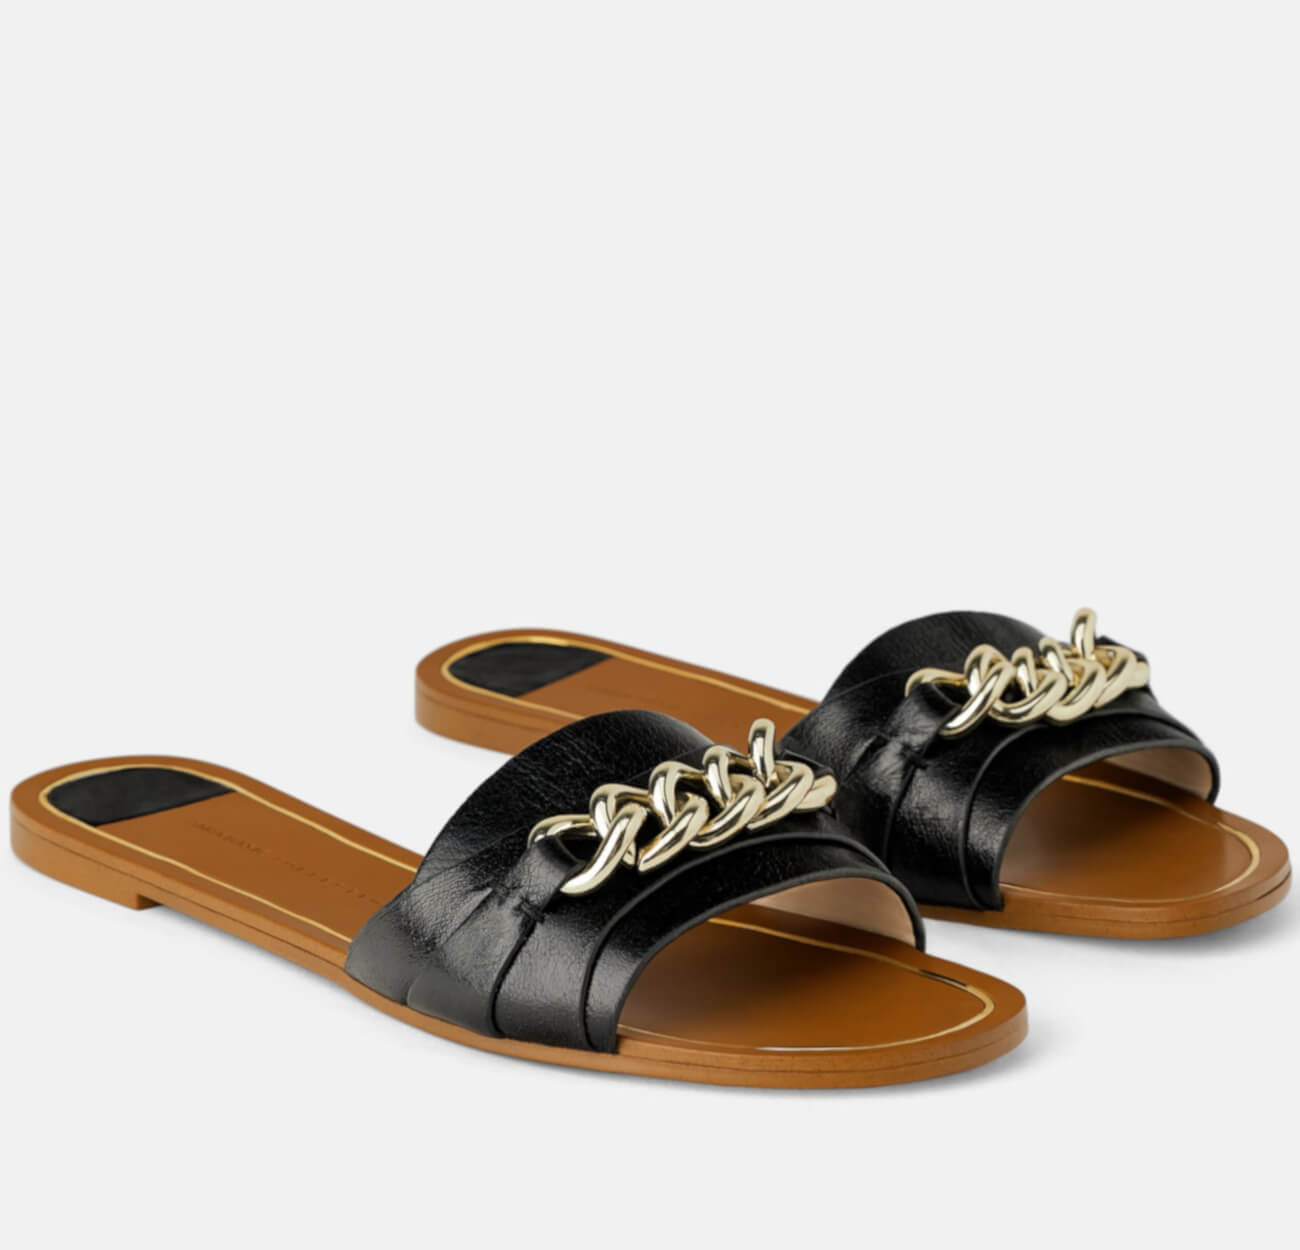 FLAT LEATHER SANDALS WITH CHAIN for this summer